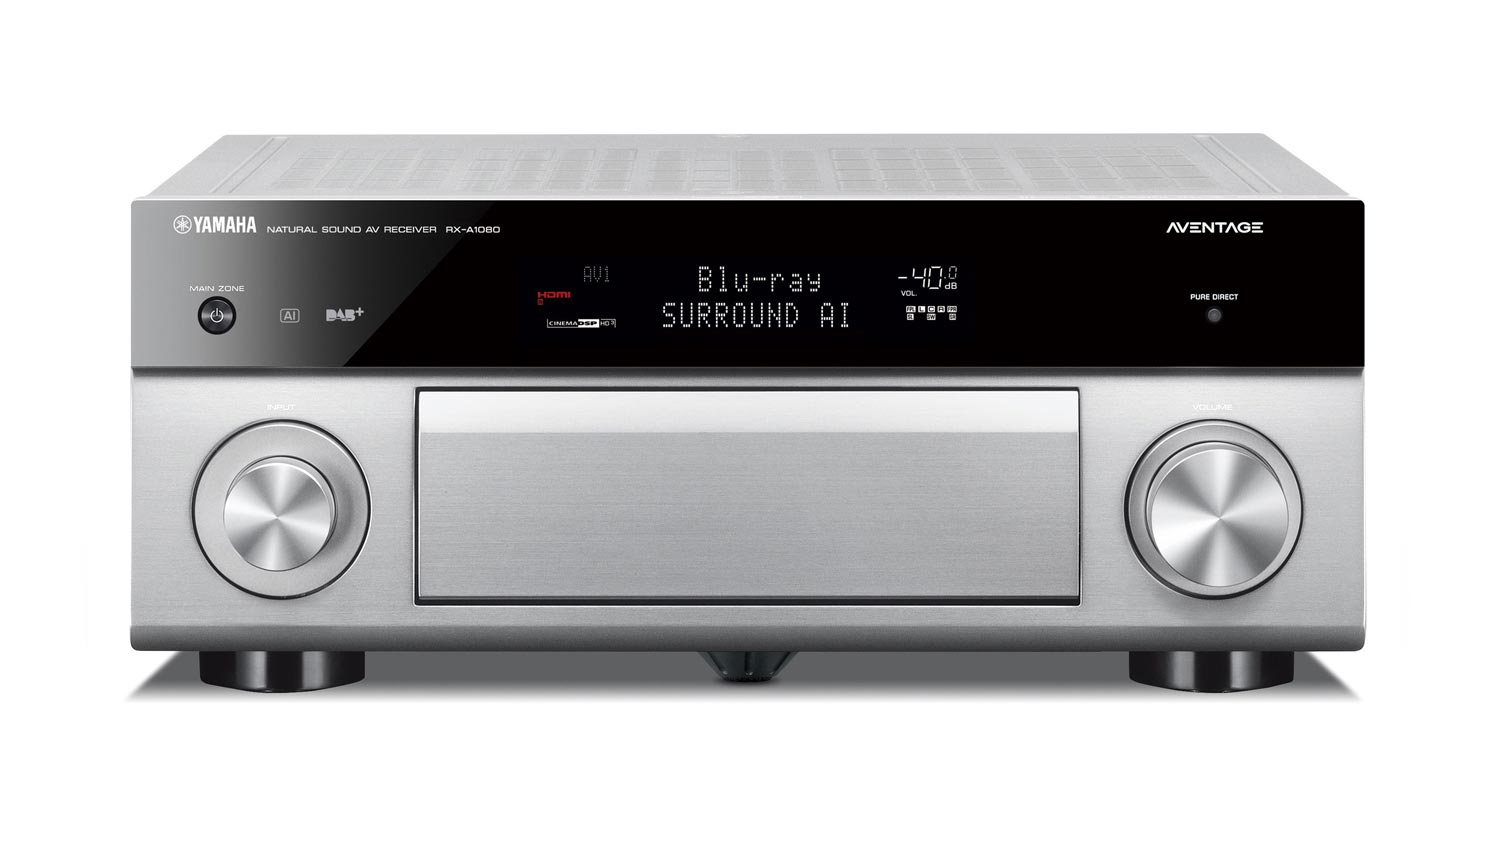 yamaha rx a1080 aventage surround receiver. Black Bedroom Furniture Sets. Home Design Ideas